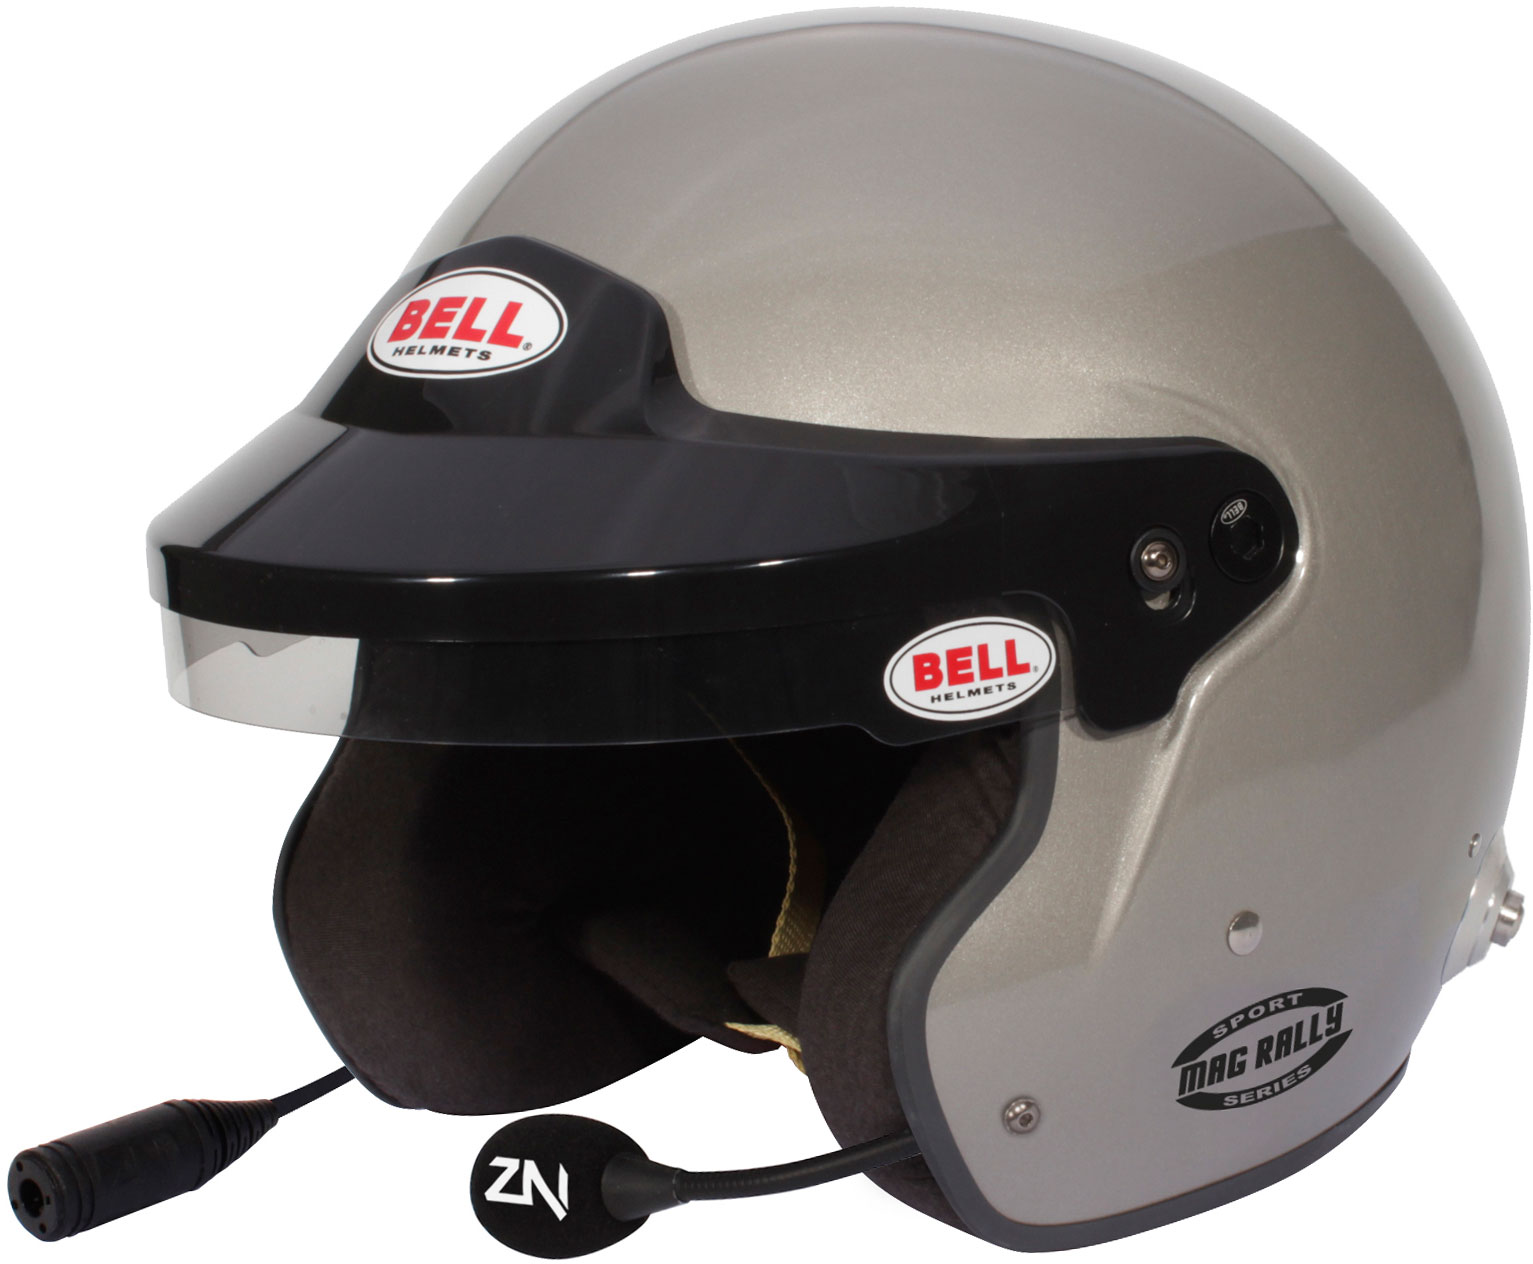 BELL Helm MAG Rally